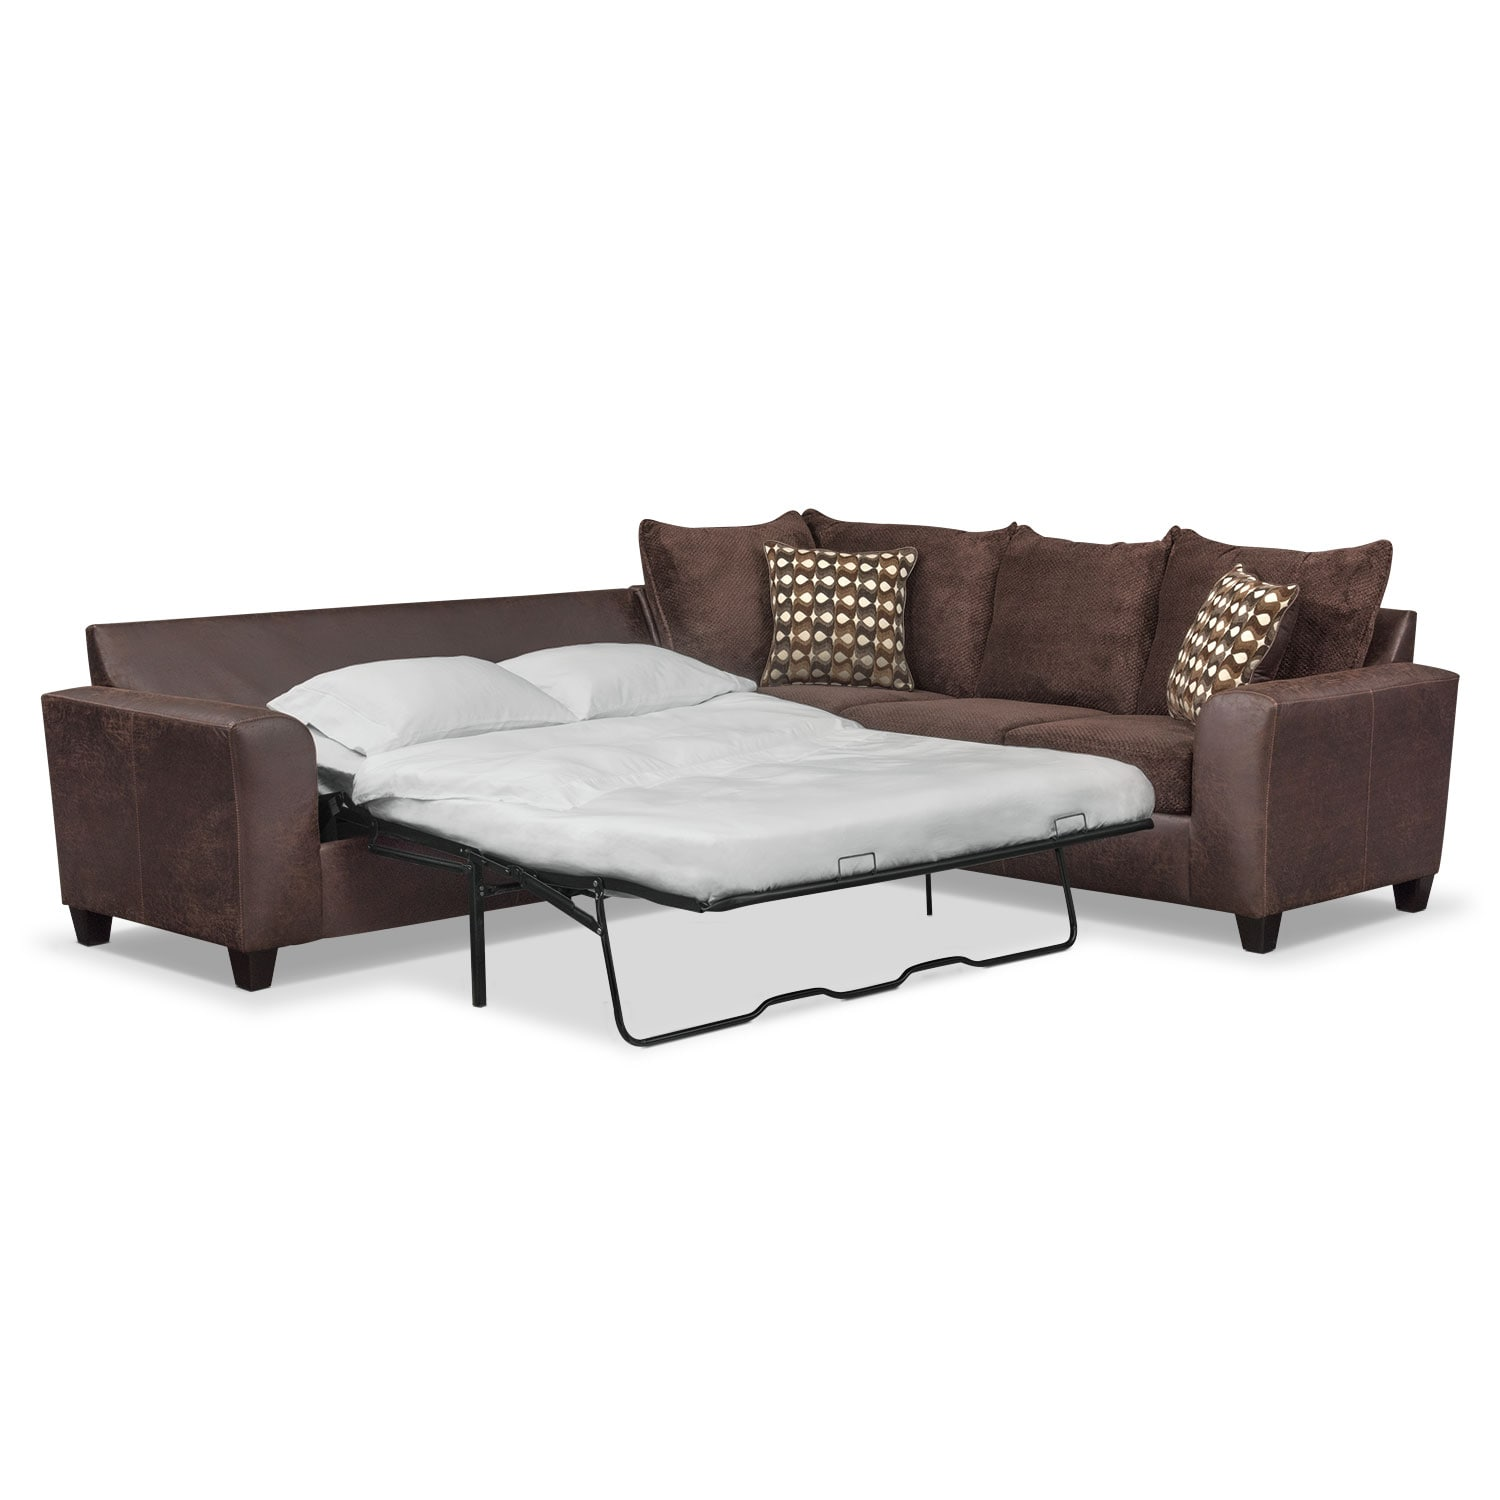 Brando 3 piece sleeper sectional american signature furniture